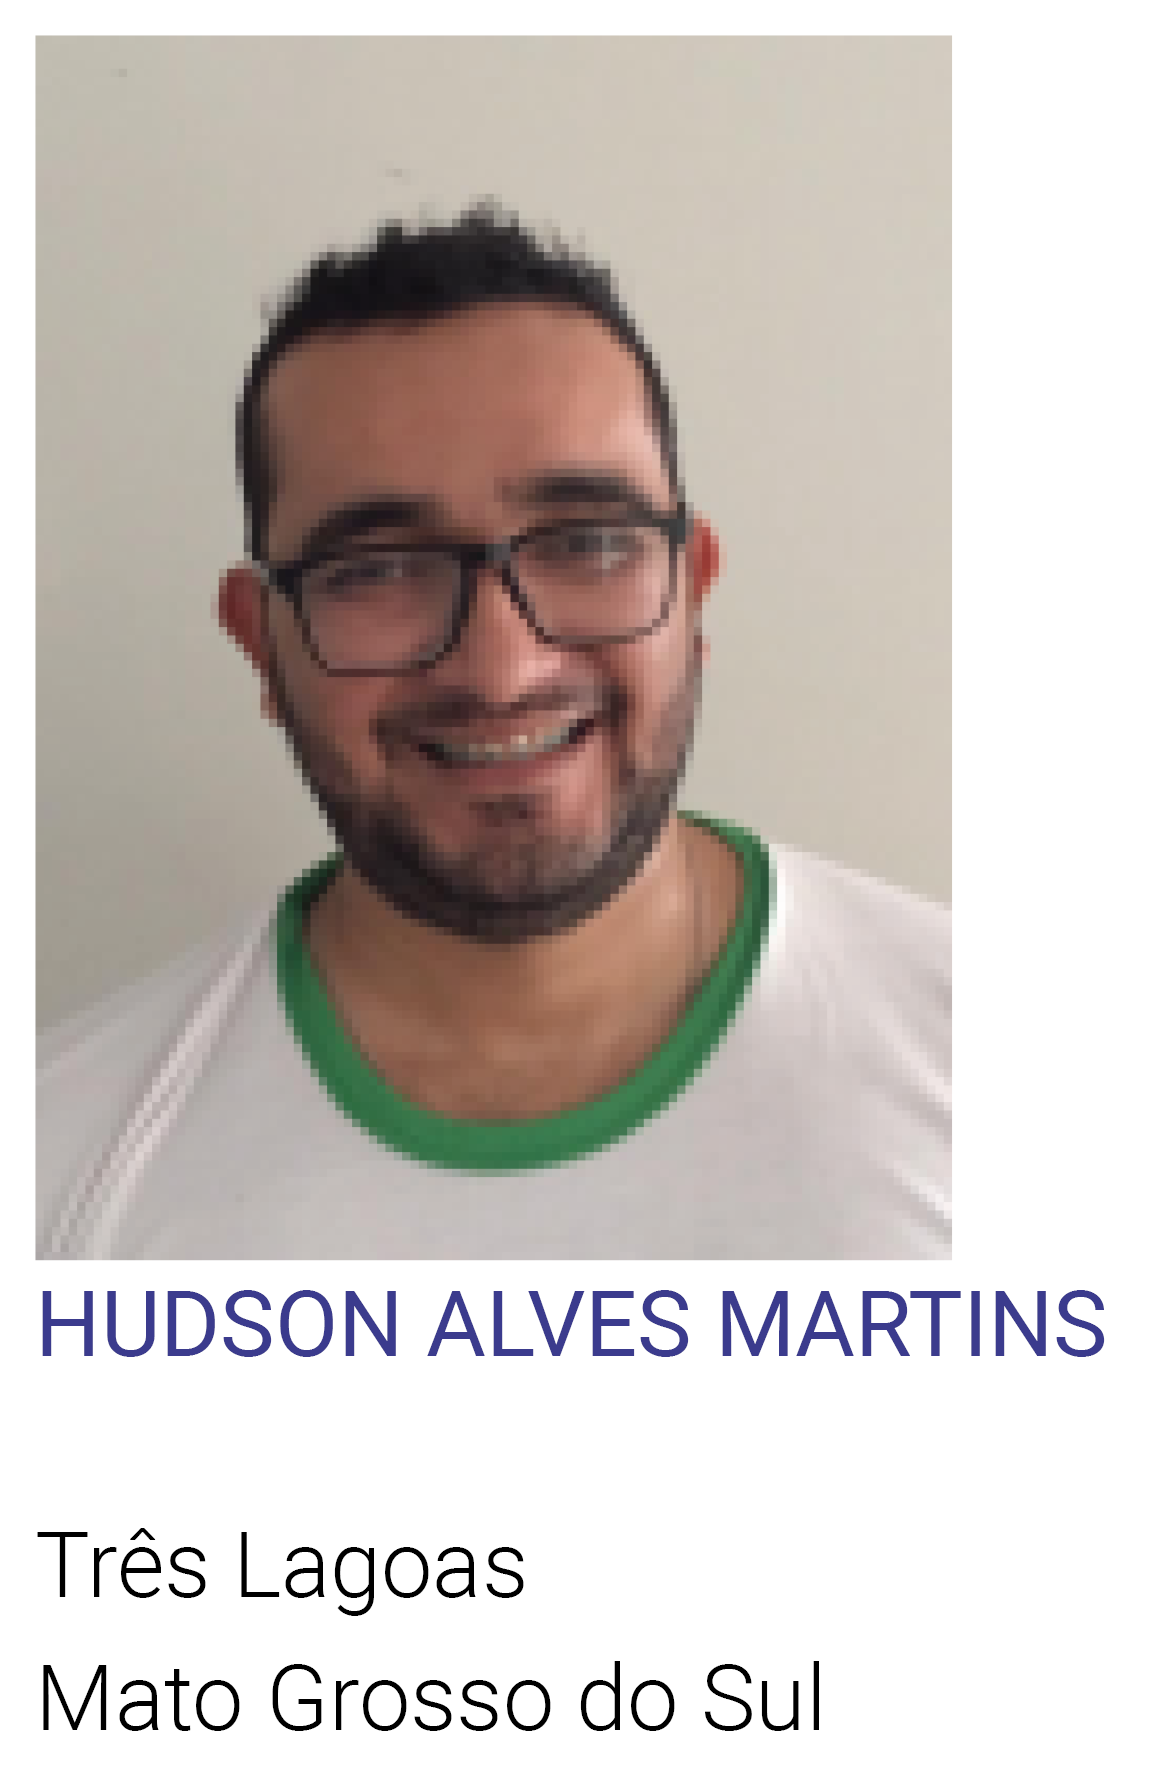 HUDSON ALVES MARTINS